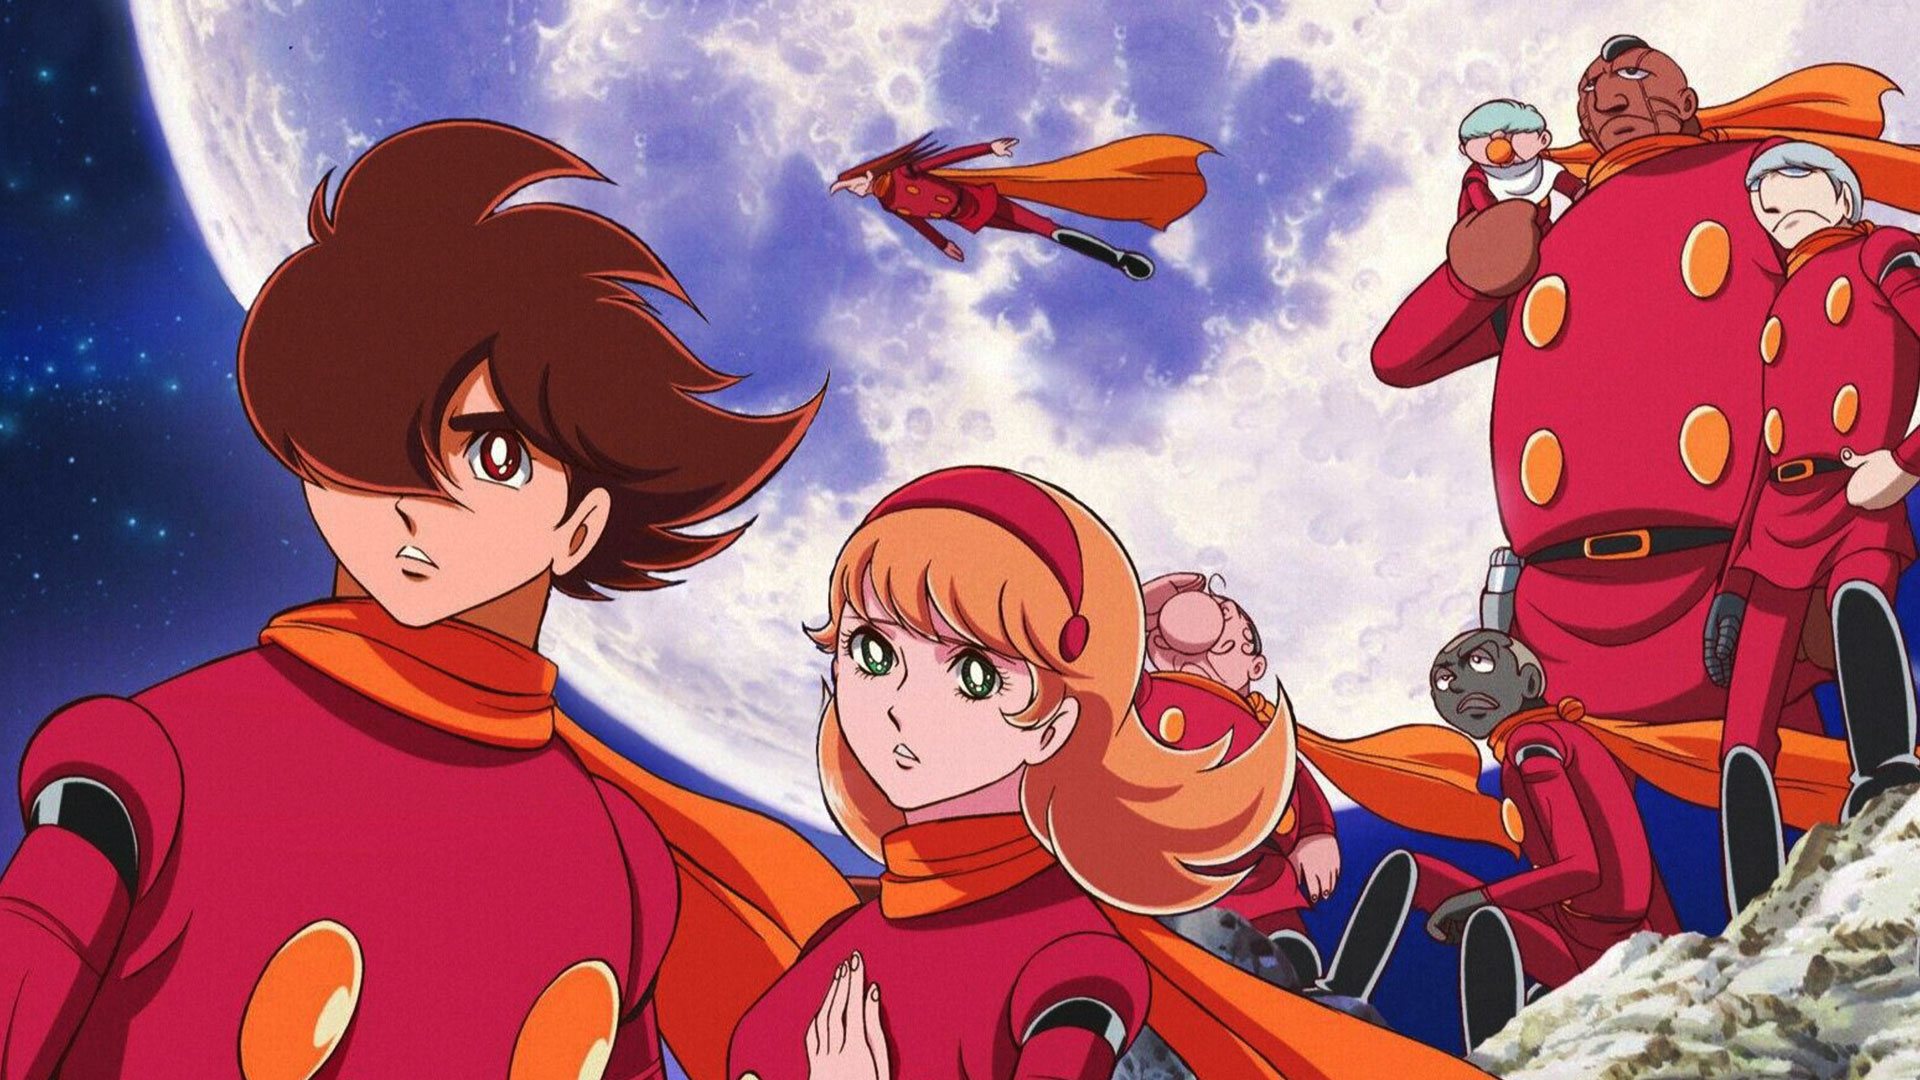 Cyborg 009: The Cyborg Soldier banner image